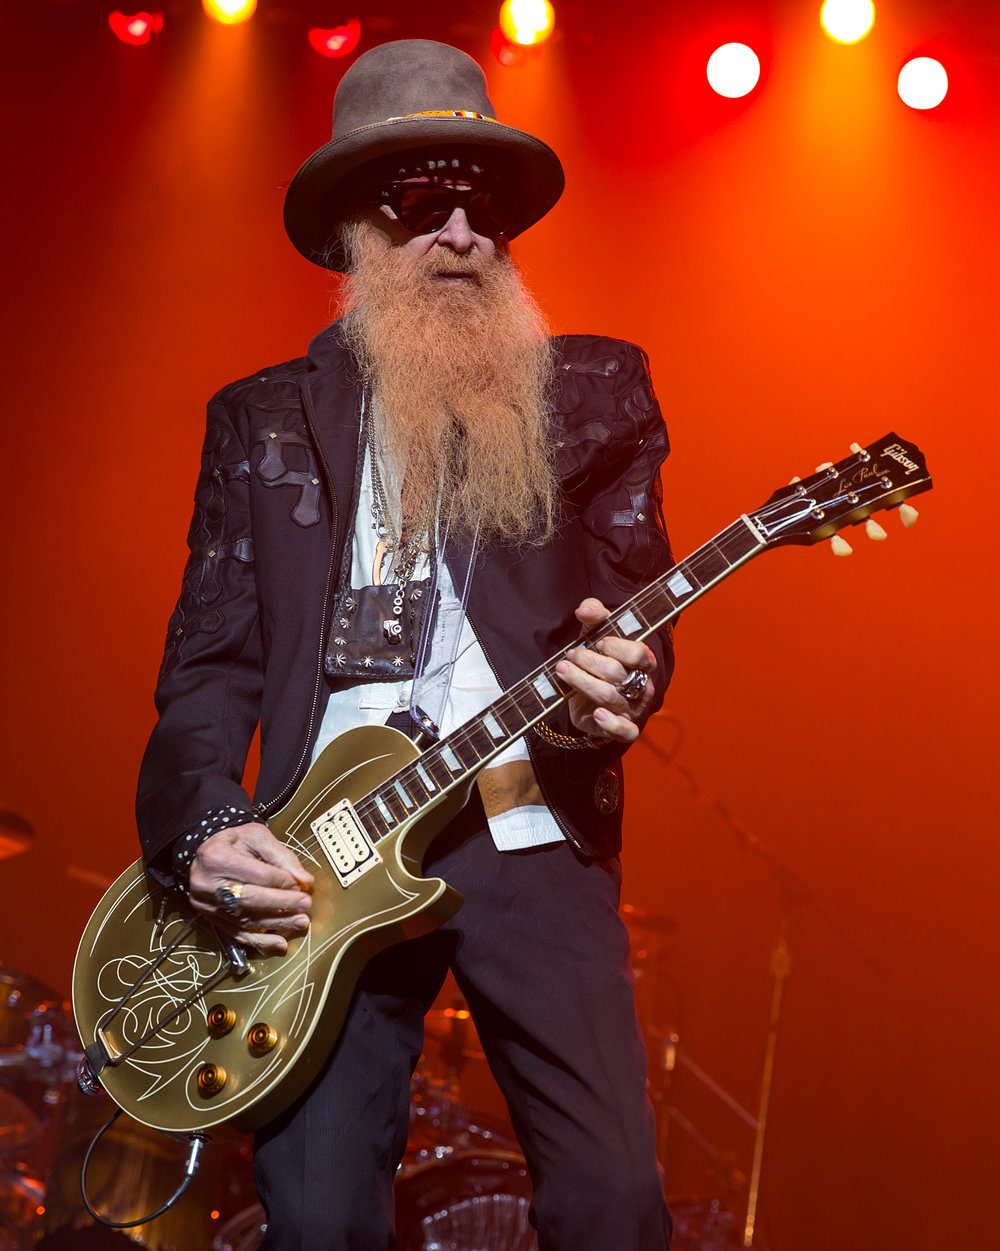 Billy Gibbons - ZZ Top AO Gear: Sarge ZZ Top guitarist Billy Gibbons is unquestionably one of the finest blues-rock guitarists to ever emerge from Texas. Over the course of five classic albums over a six-year span, ZZ Top became one of the country's top rock bands.